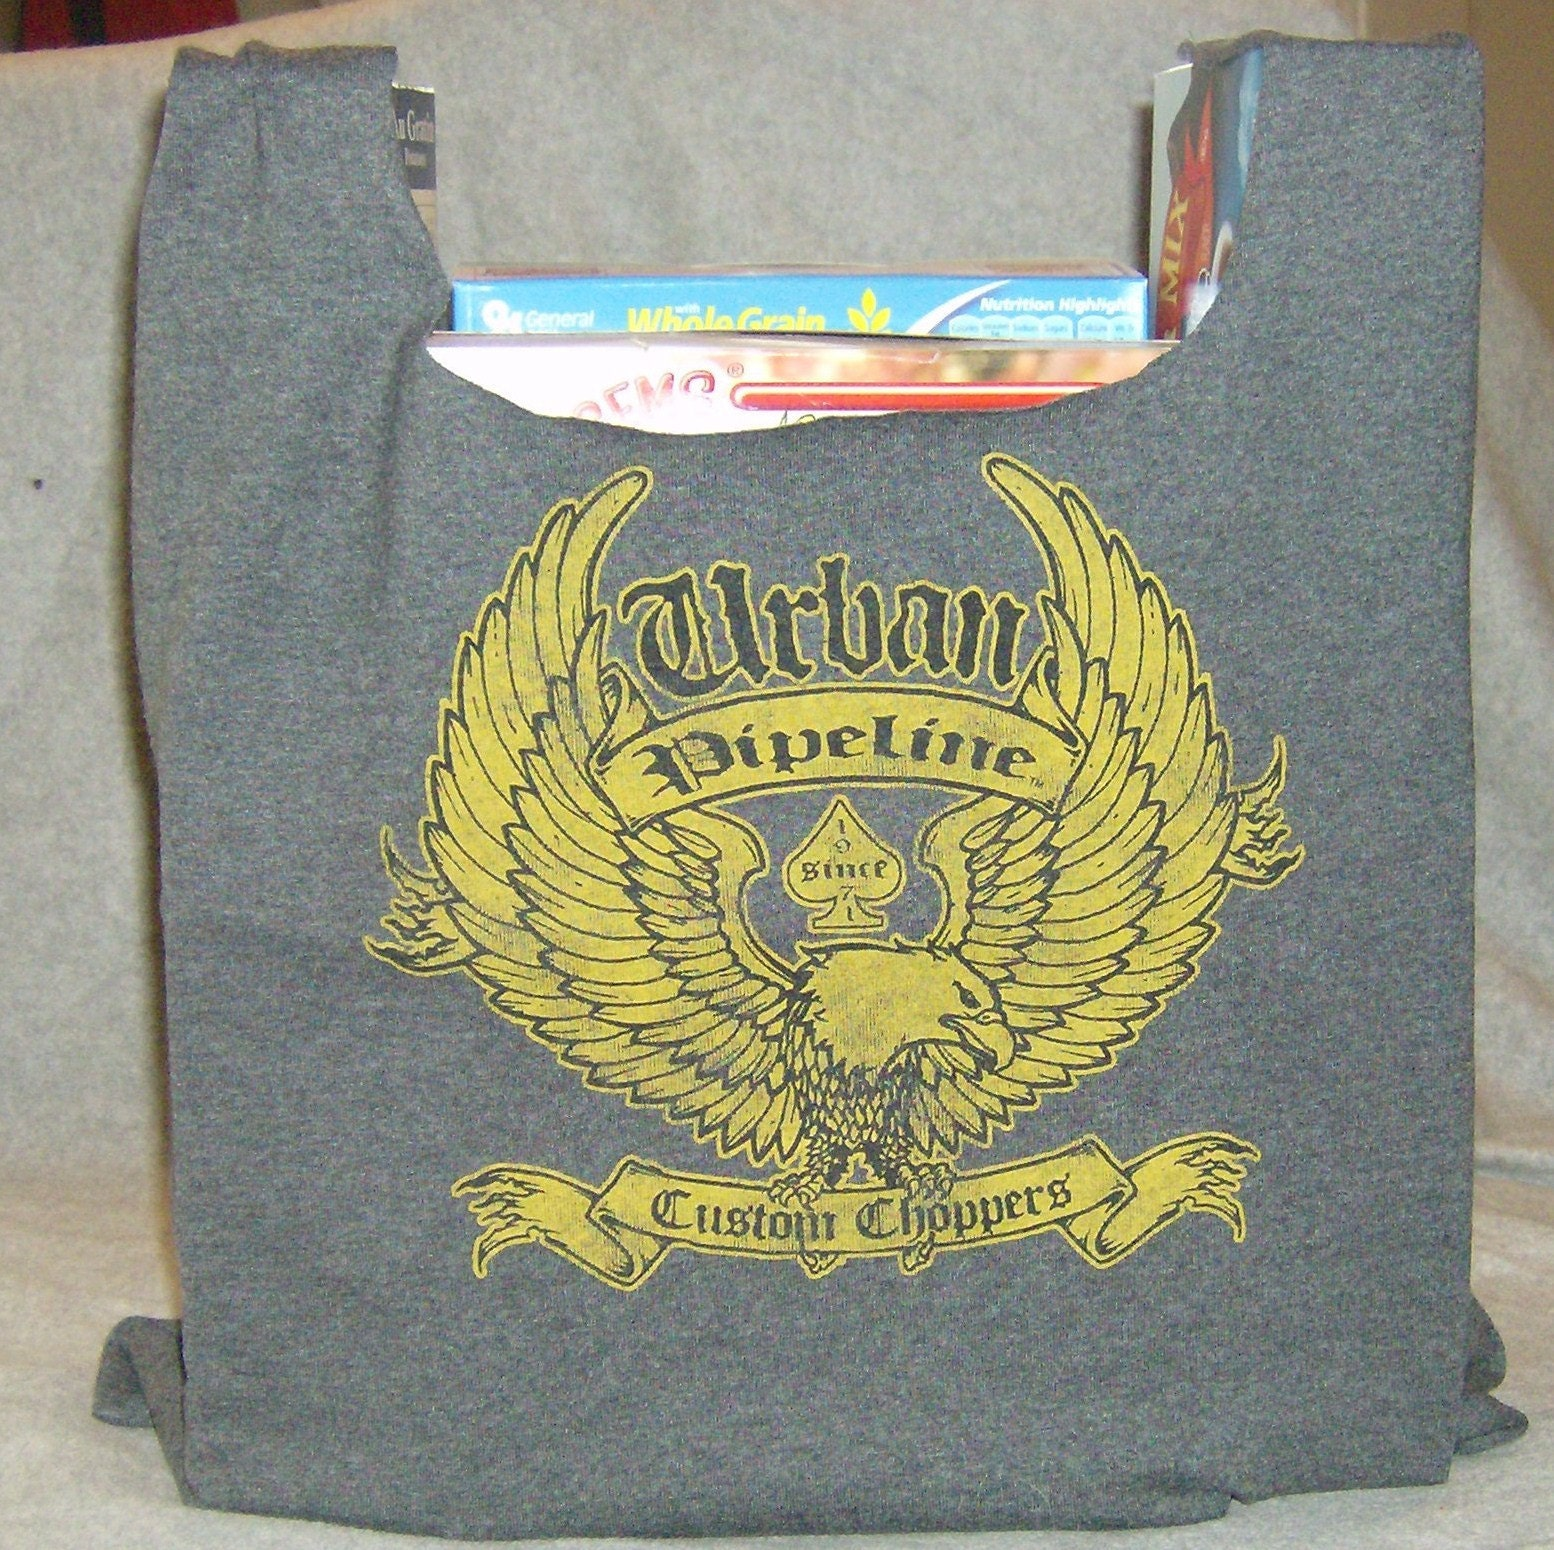 Recycled cotton t shirt tote grocery bag urban pipeline custom for Personalized t shirt bags